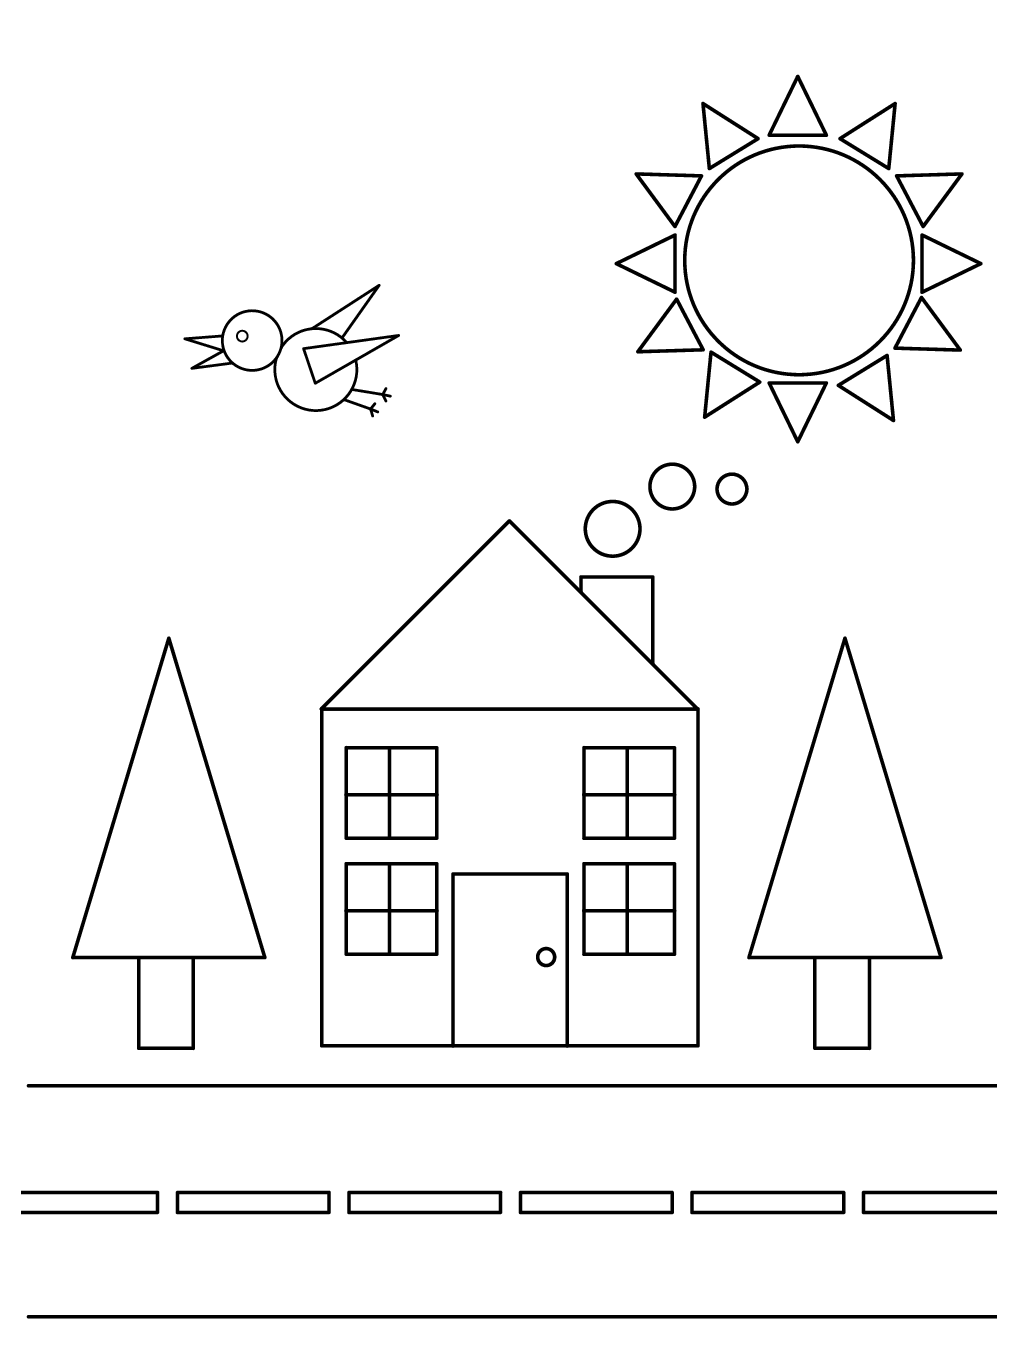 coloring with instructions 1000 images about english for children on pinterest instructions coloring with